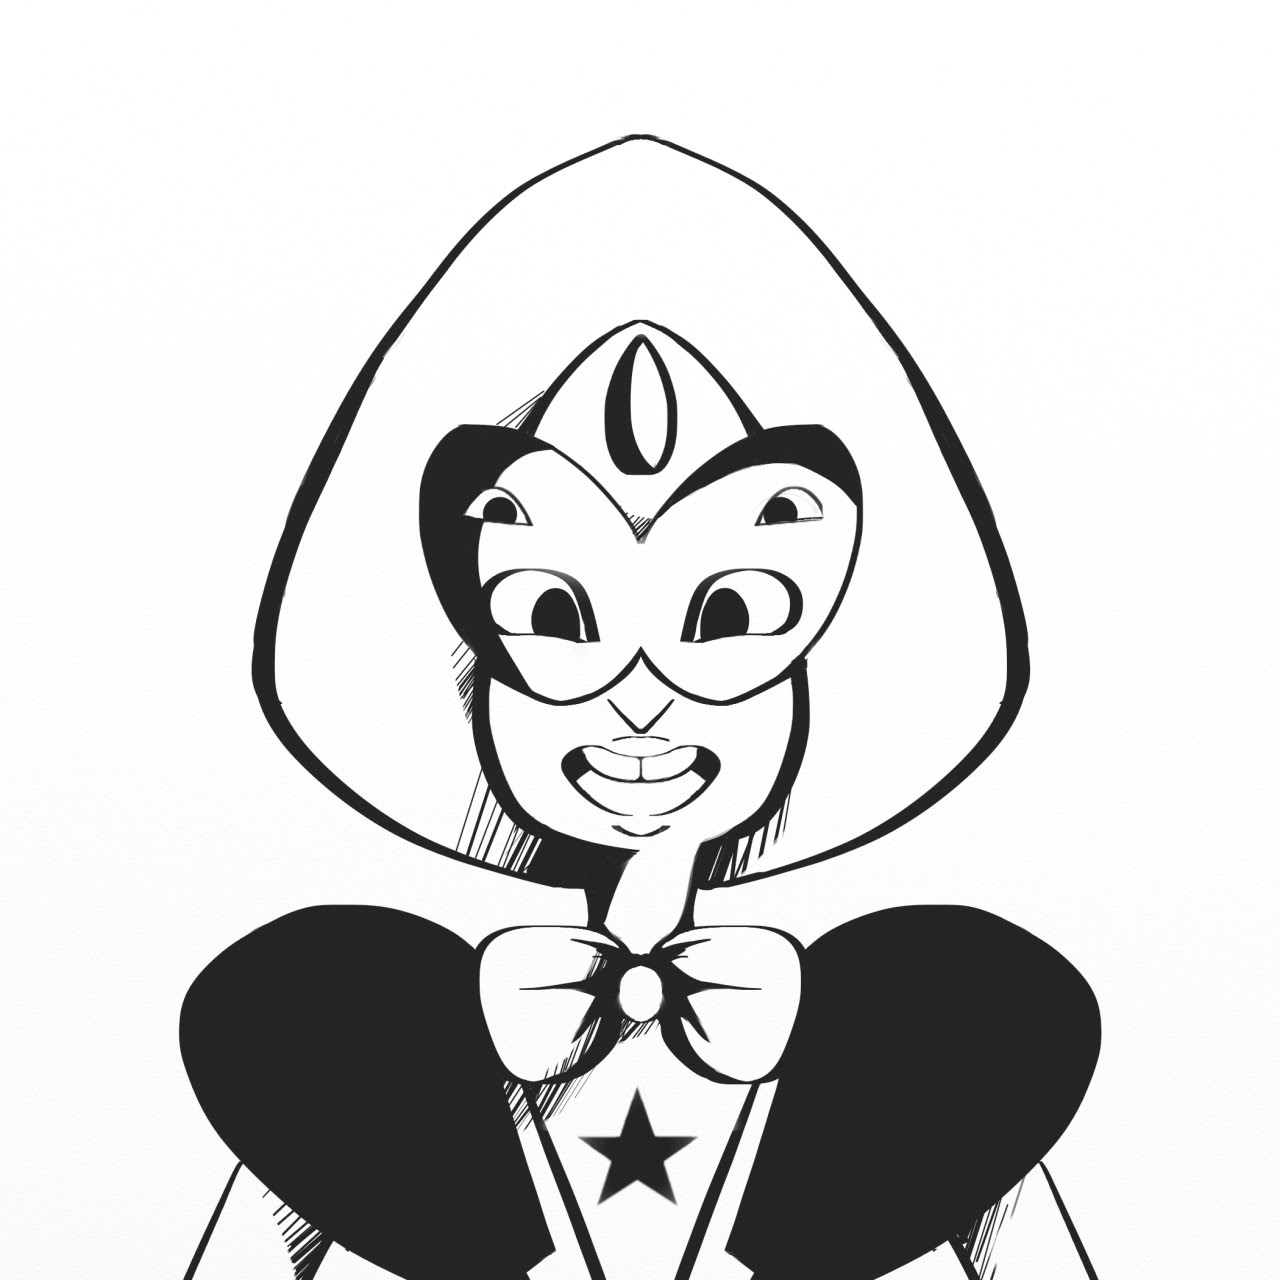 What's this? An encore performance? Just couldn't get enough of me, could you? Sardonyx from Steven Universe!